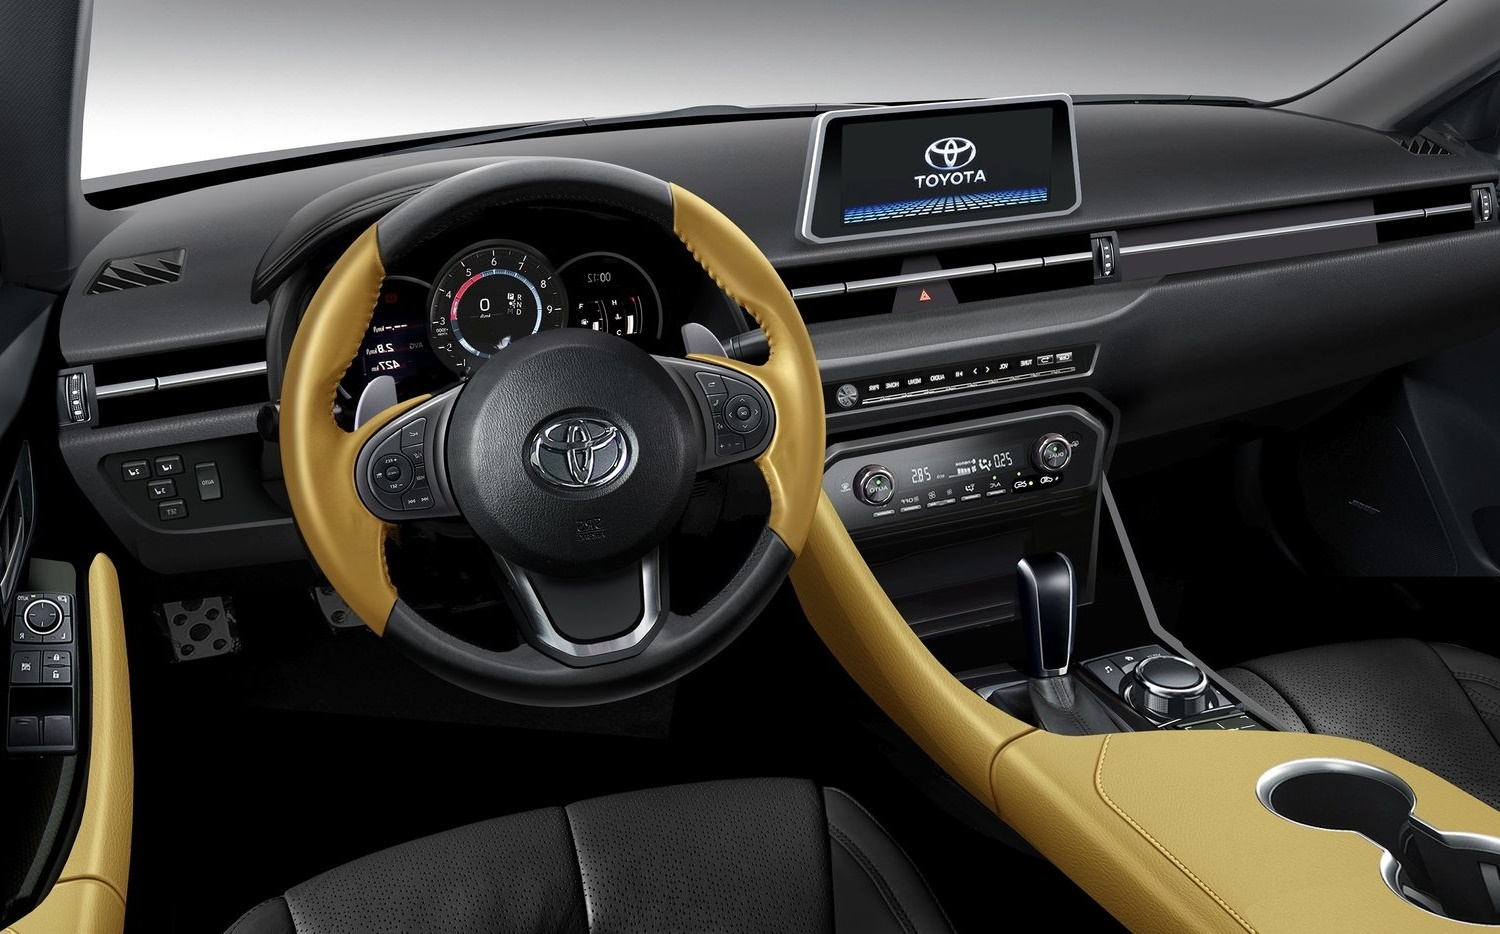 Toyota Supra Interior Looking More Production In Latest Sighting